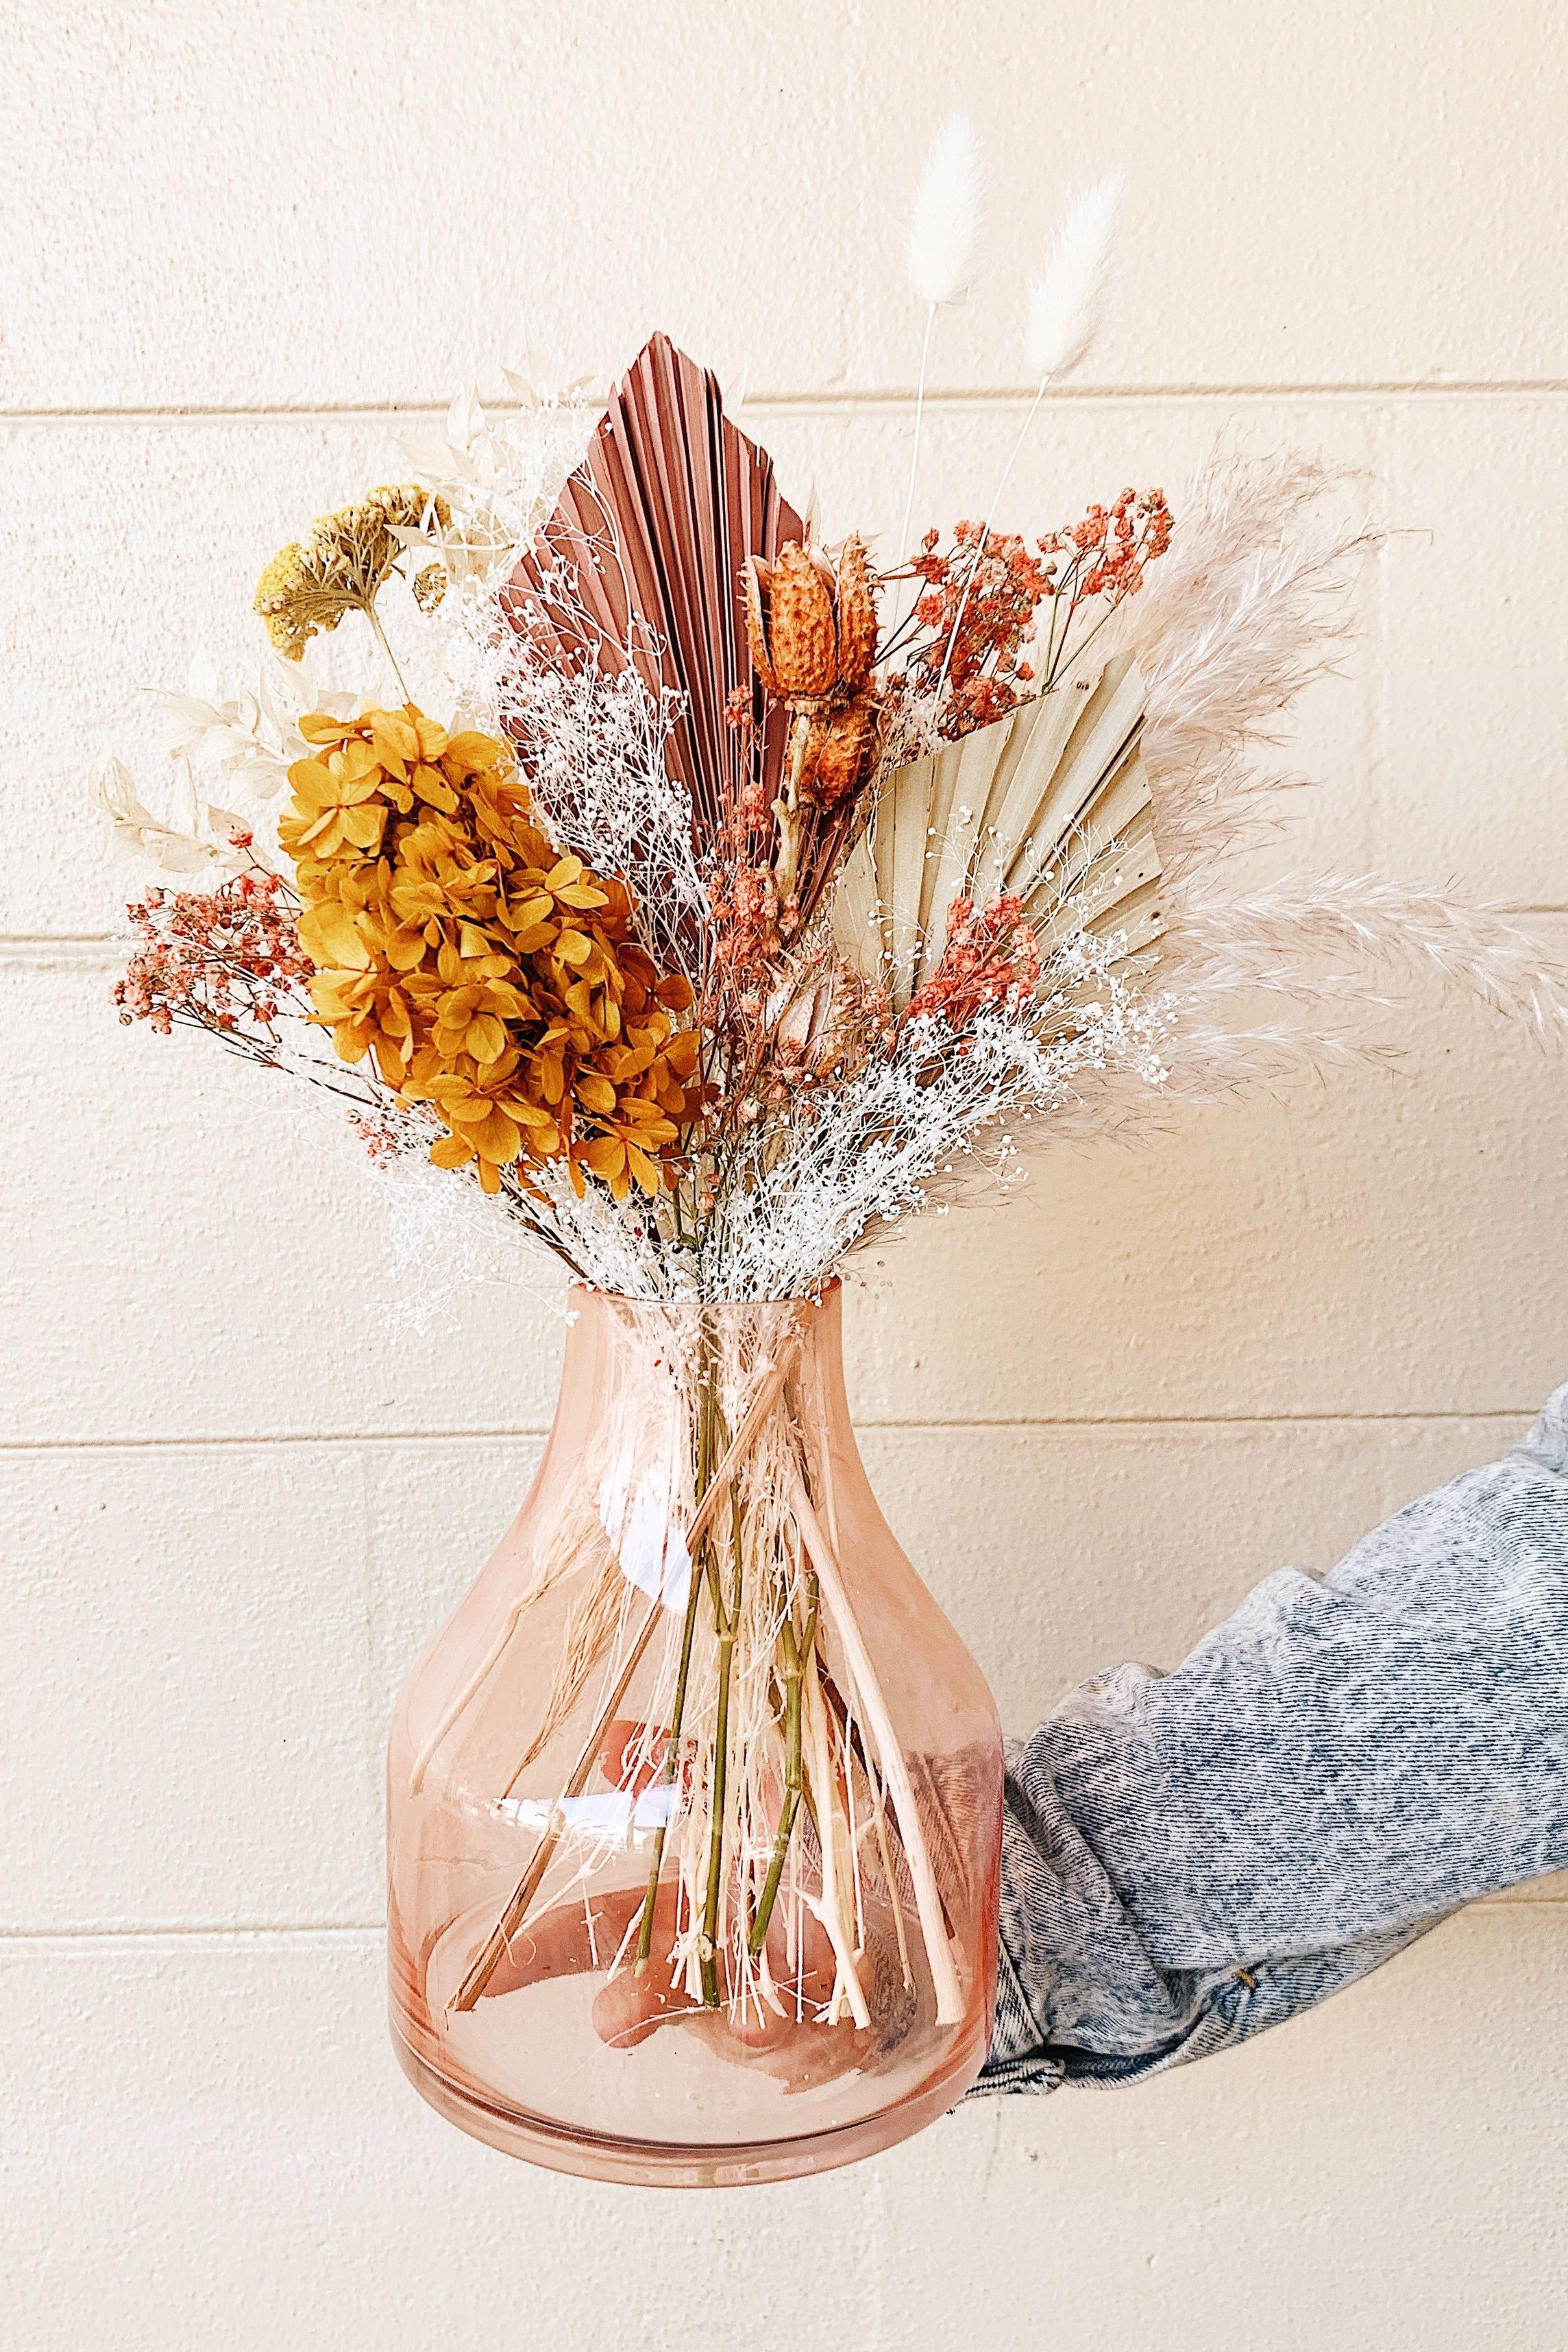 Simple Pink And Orange Dried Flower Arrangement For Boho Home Decor In 2020 Dried Flowers Dried Flower Arrangements Dried Flower Bouquet